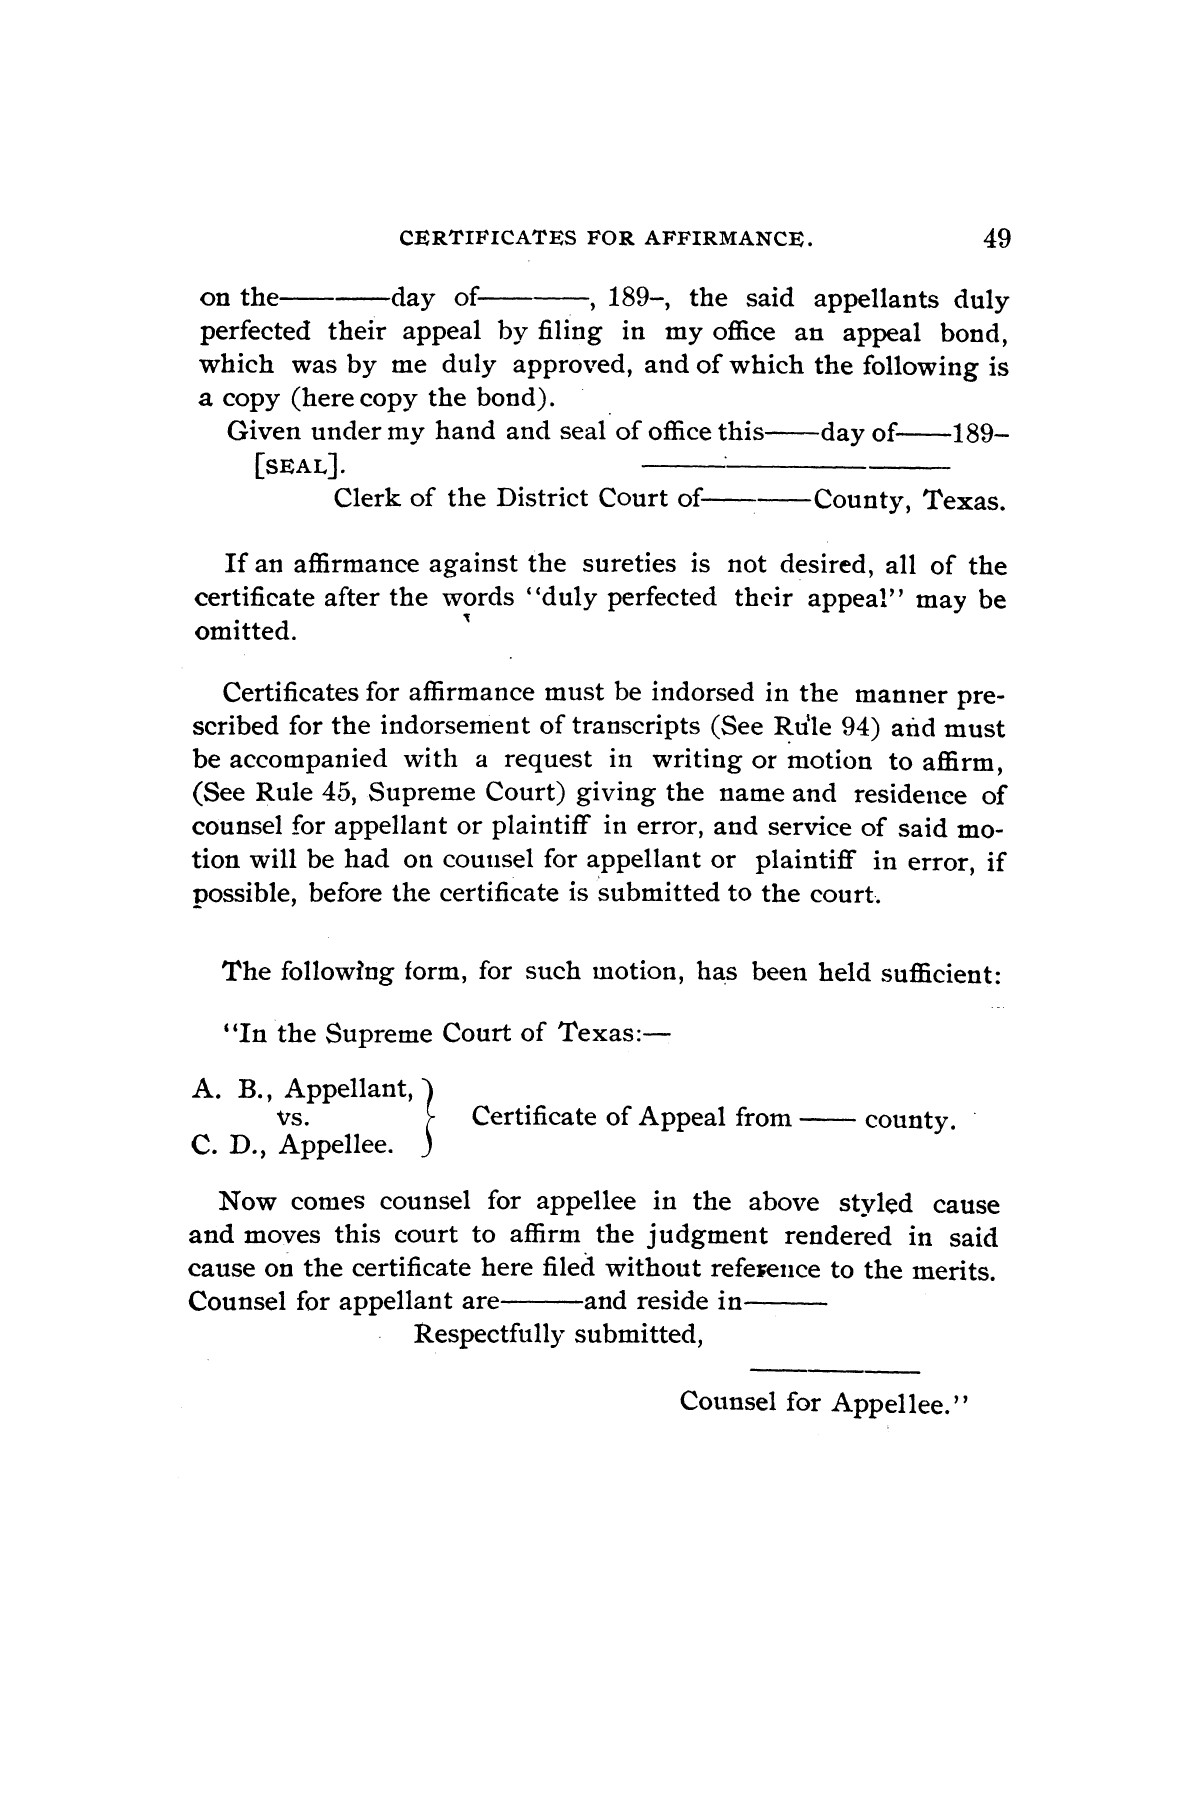 Rules for the courts of Texas: adopted by order of the Supreme Court at Tyler on the first day of December, A.D. 1877: together with amendments thereto at various times up to the close of the Austin term, A.D. 1890                                                                                                      [Sequence #]: 51 of 64